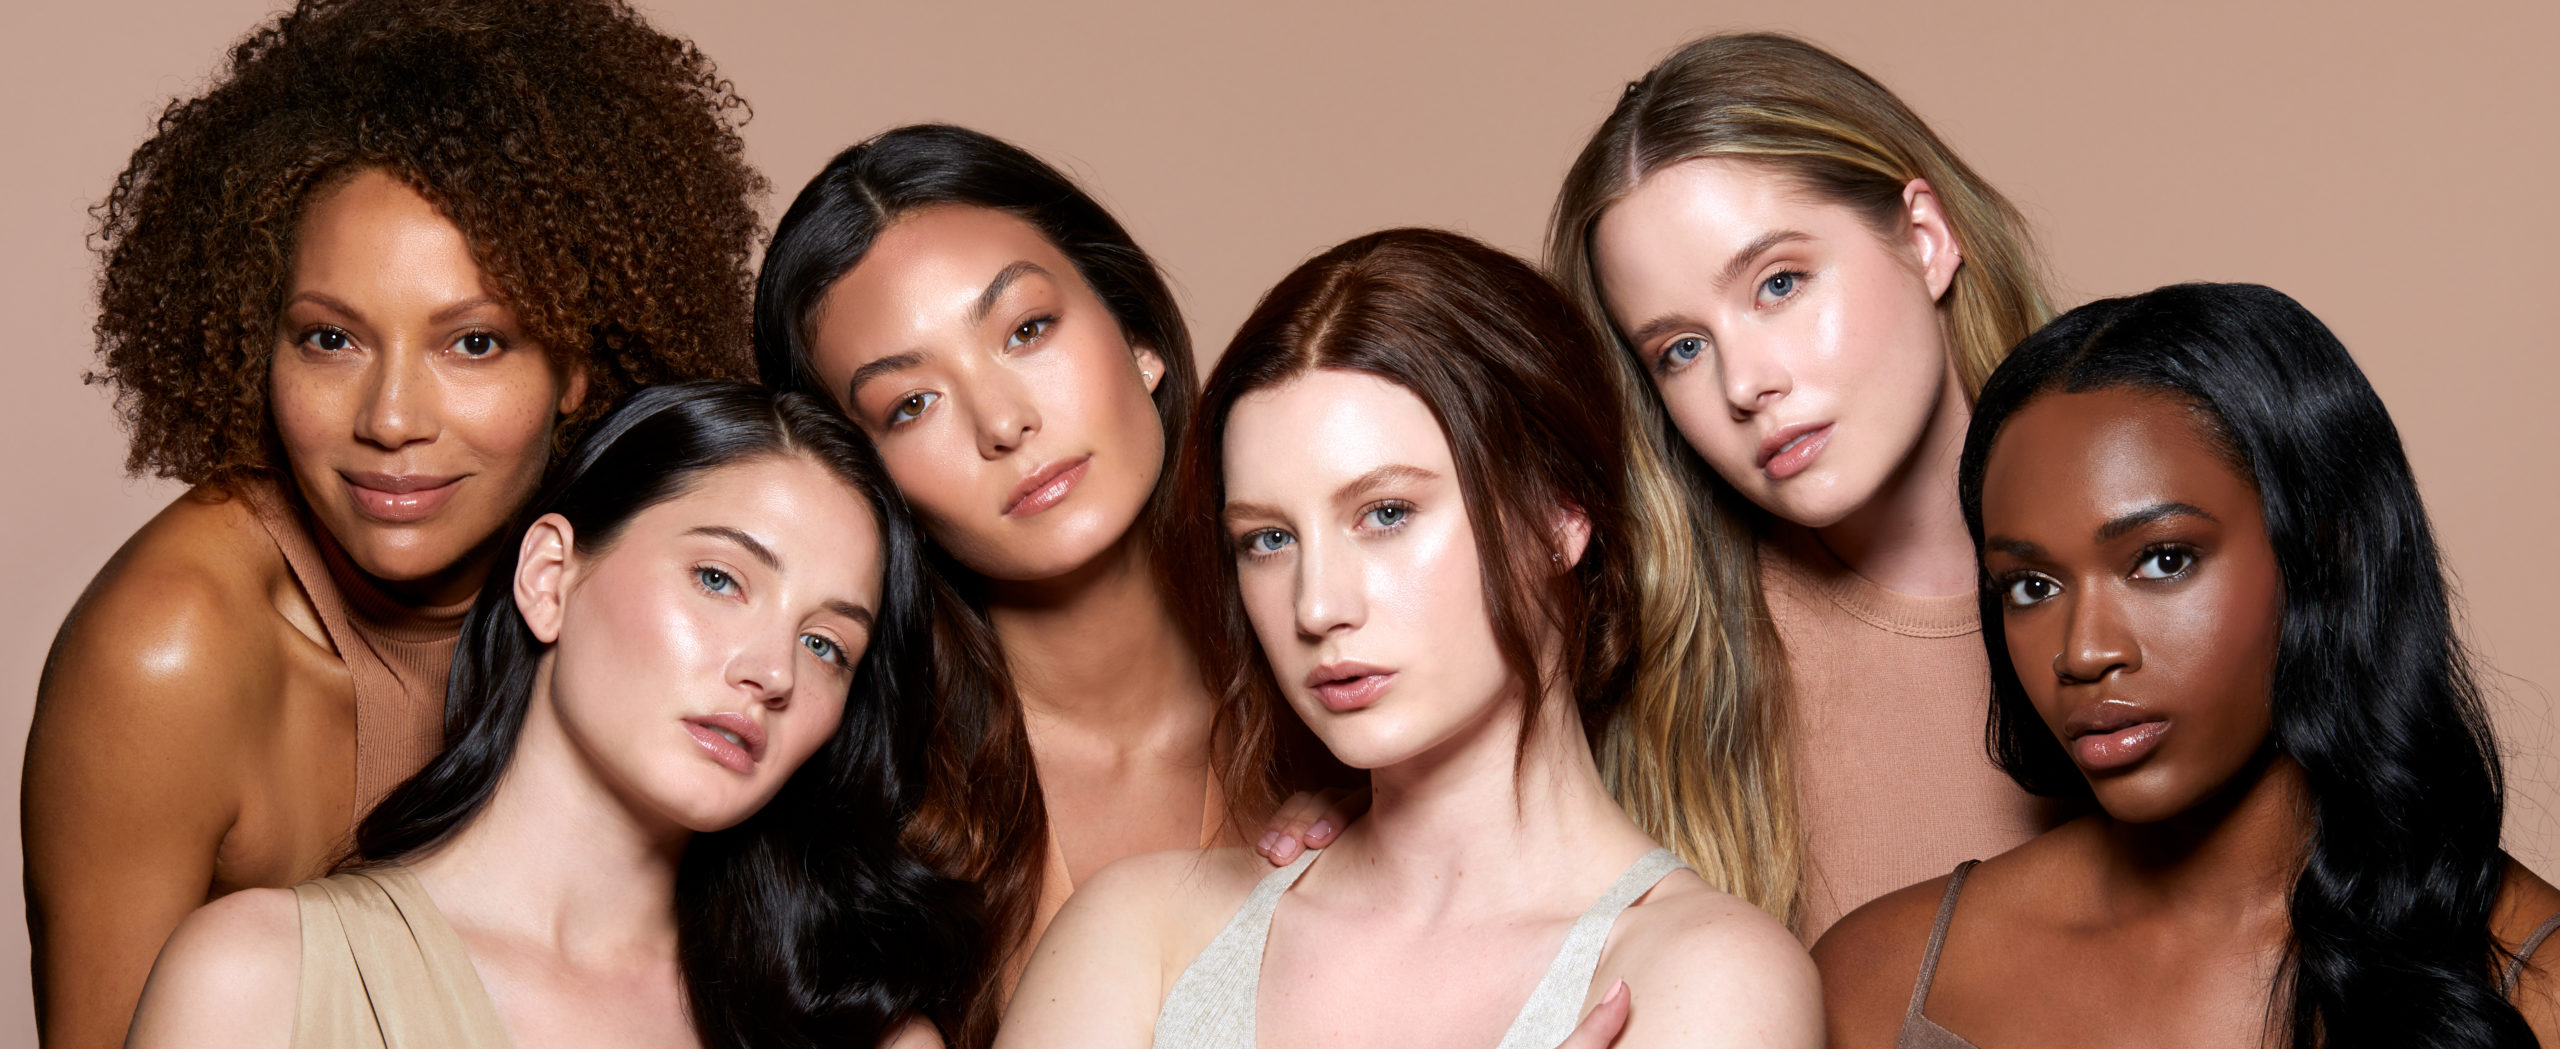 Skincare + Beauty Trends 2021